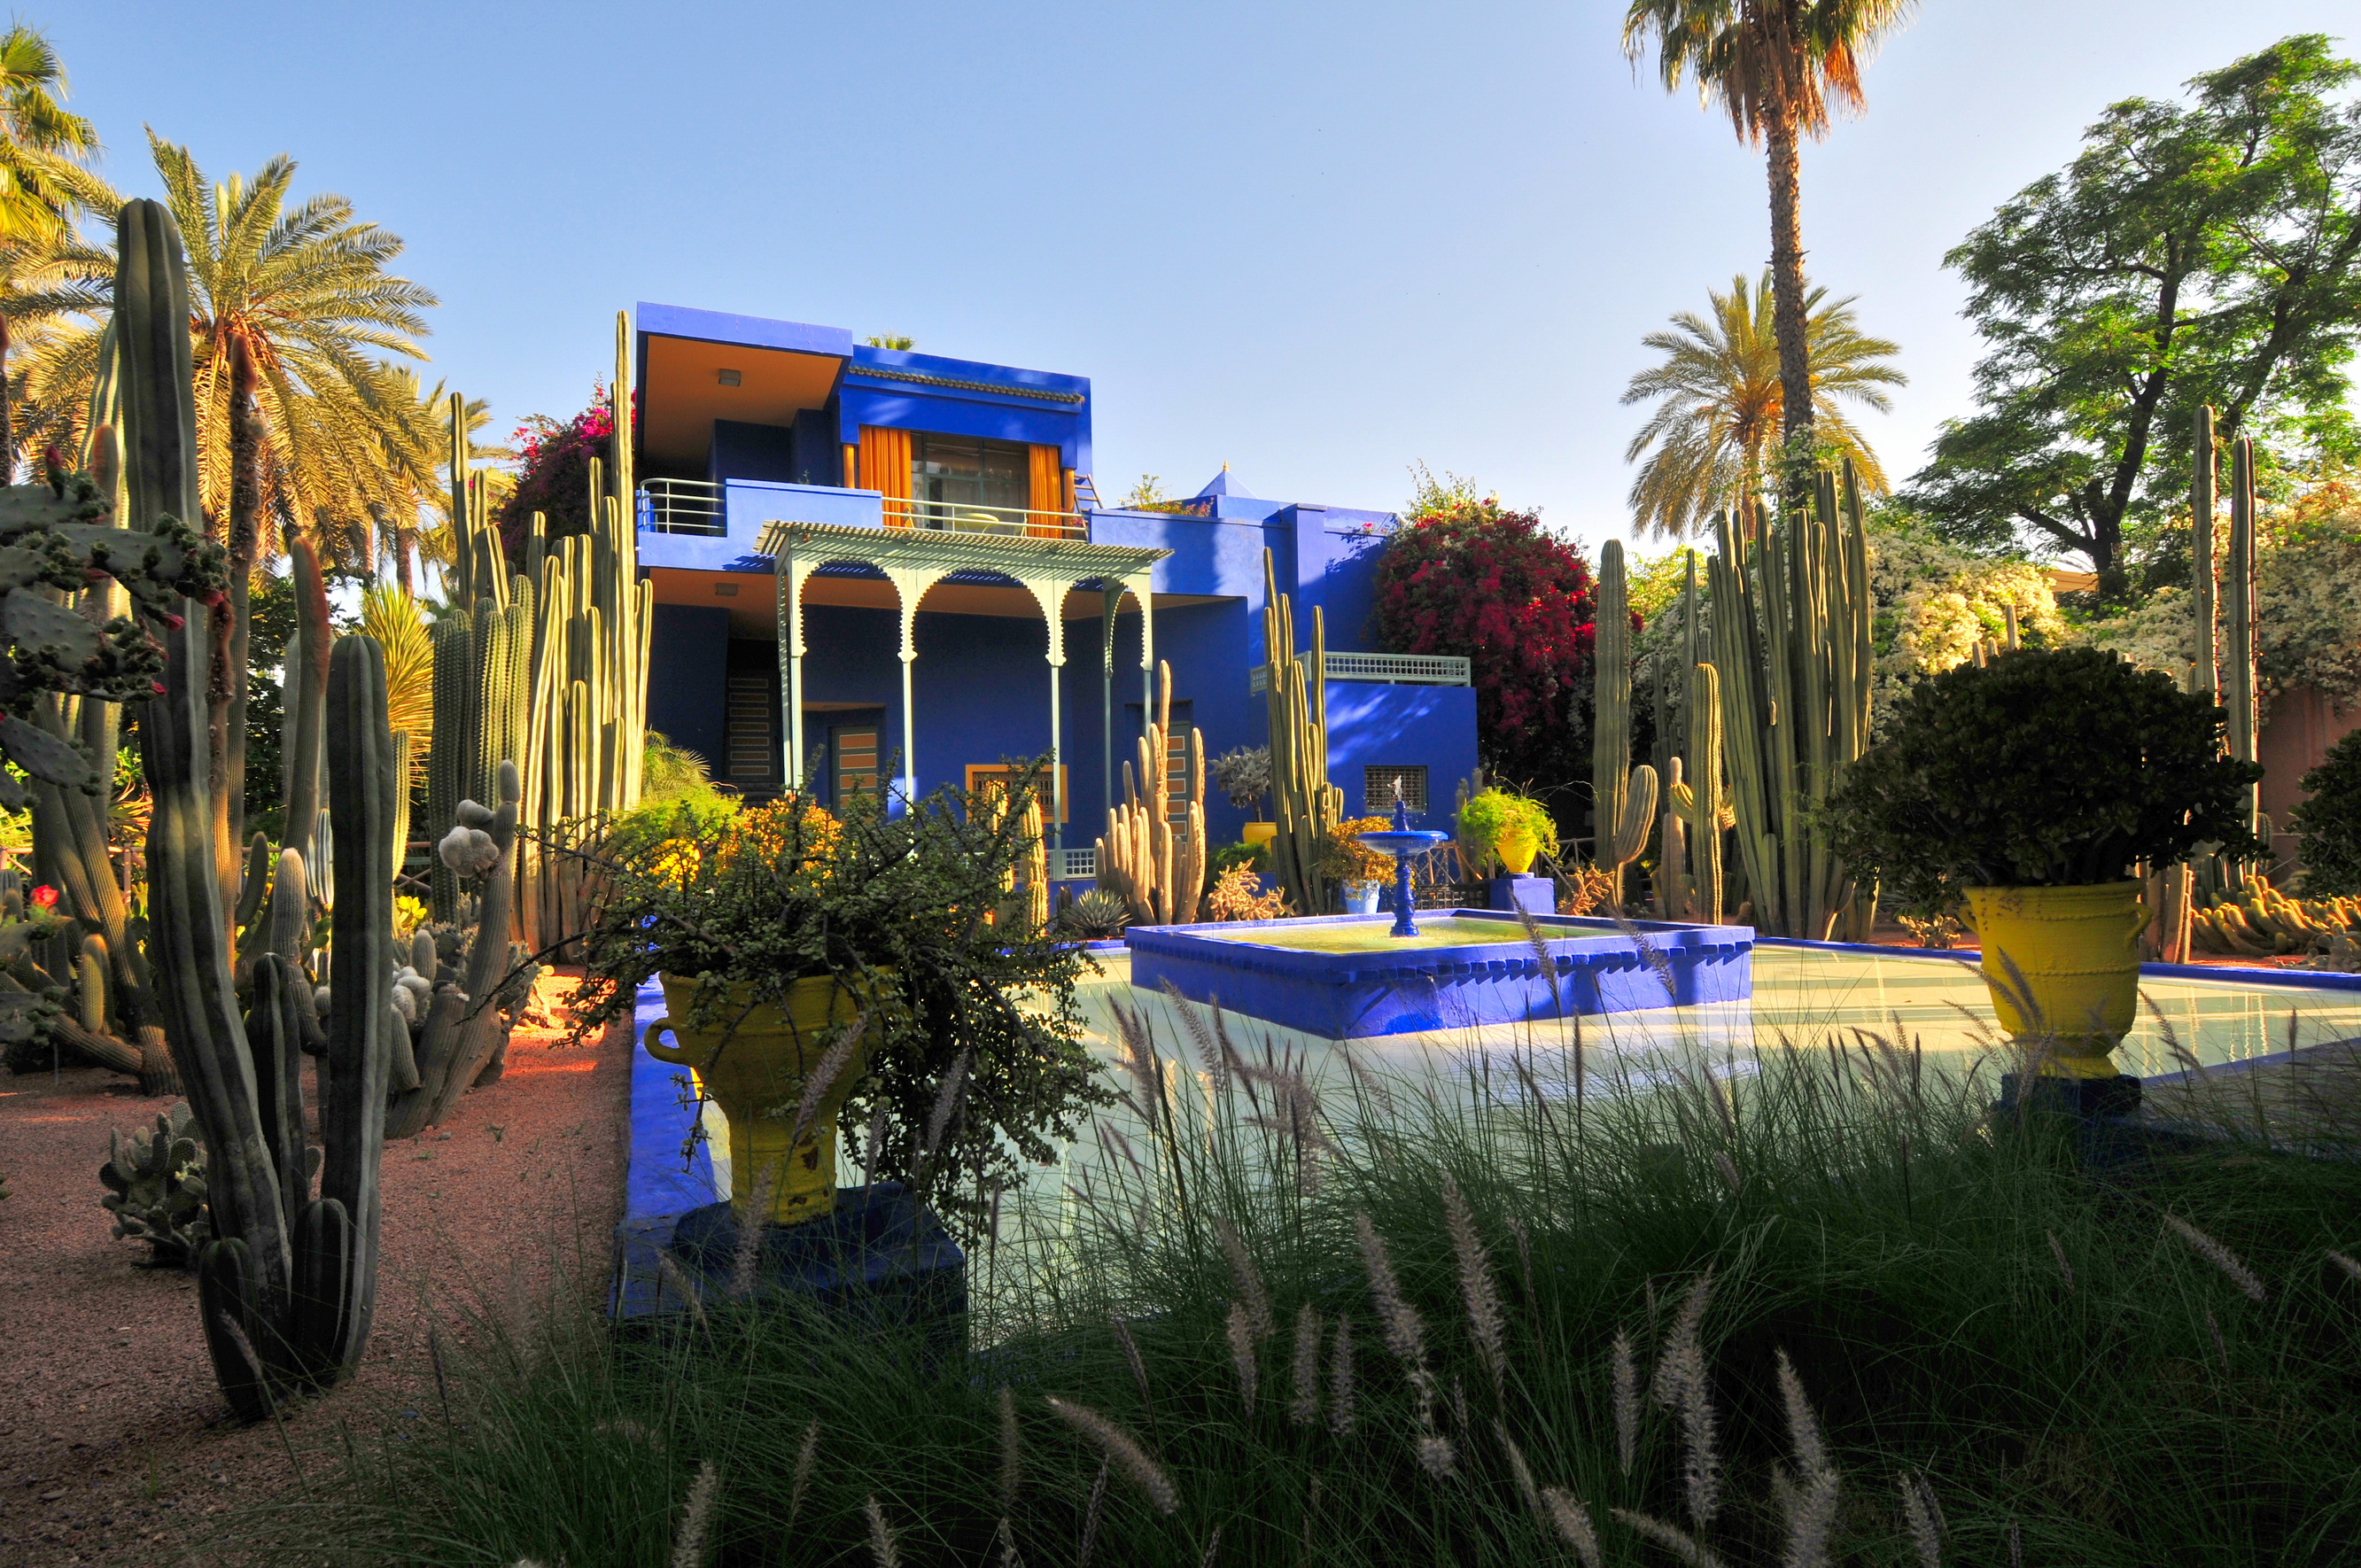 La villa majorelle yves saint laurent marrakech cpp luxury for Jardin ysl marrakech